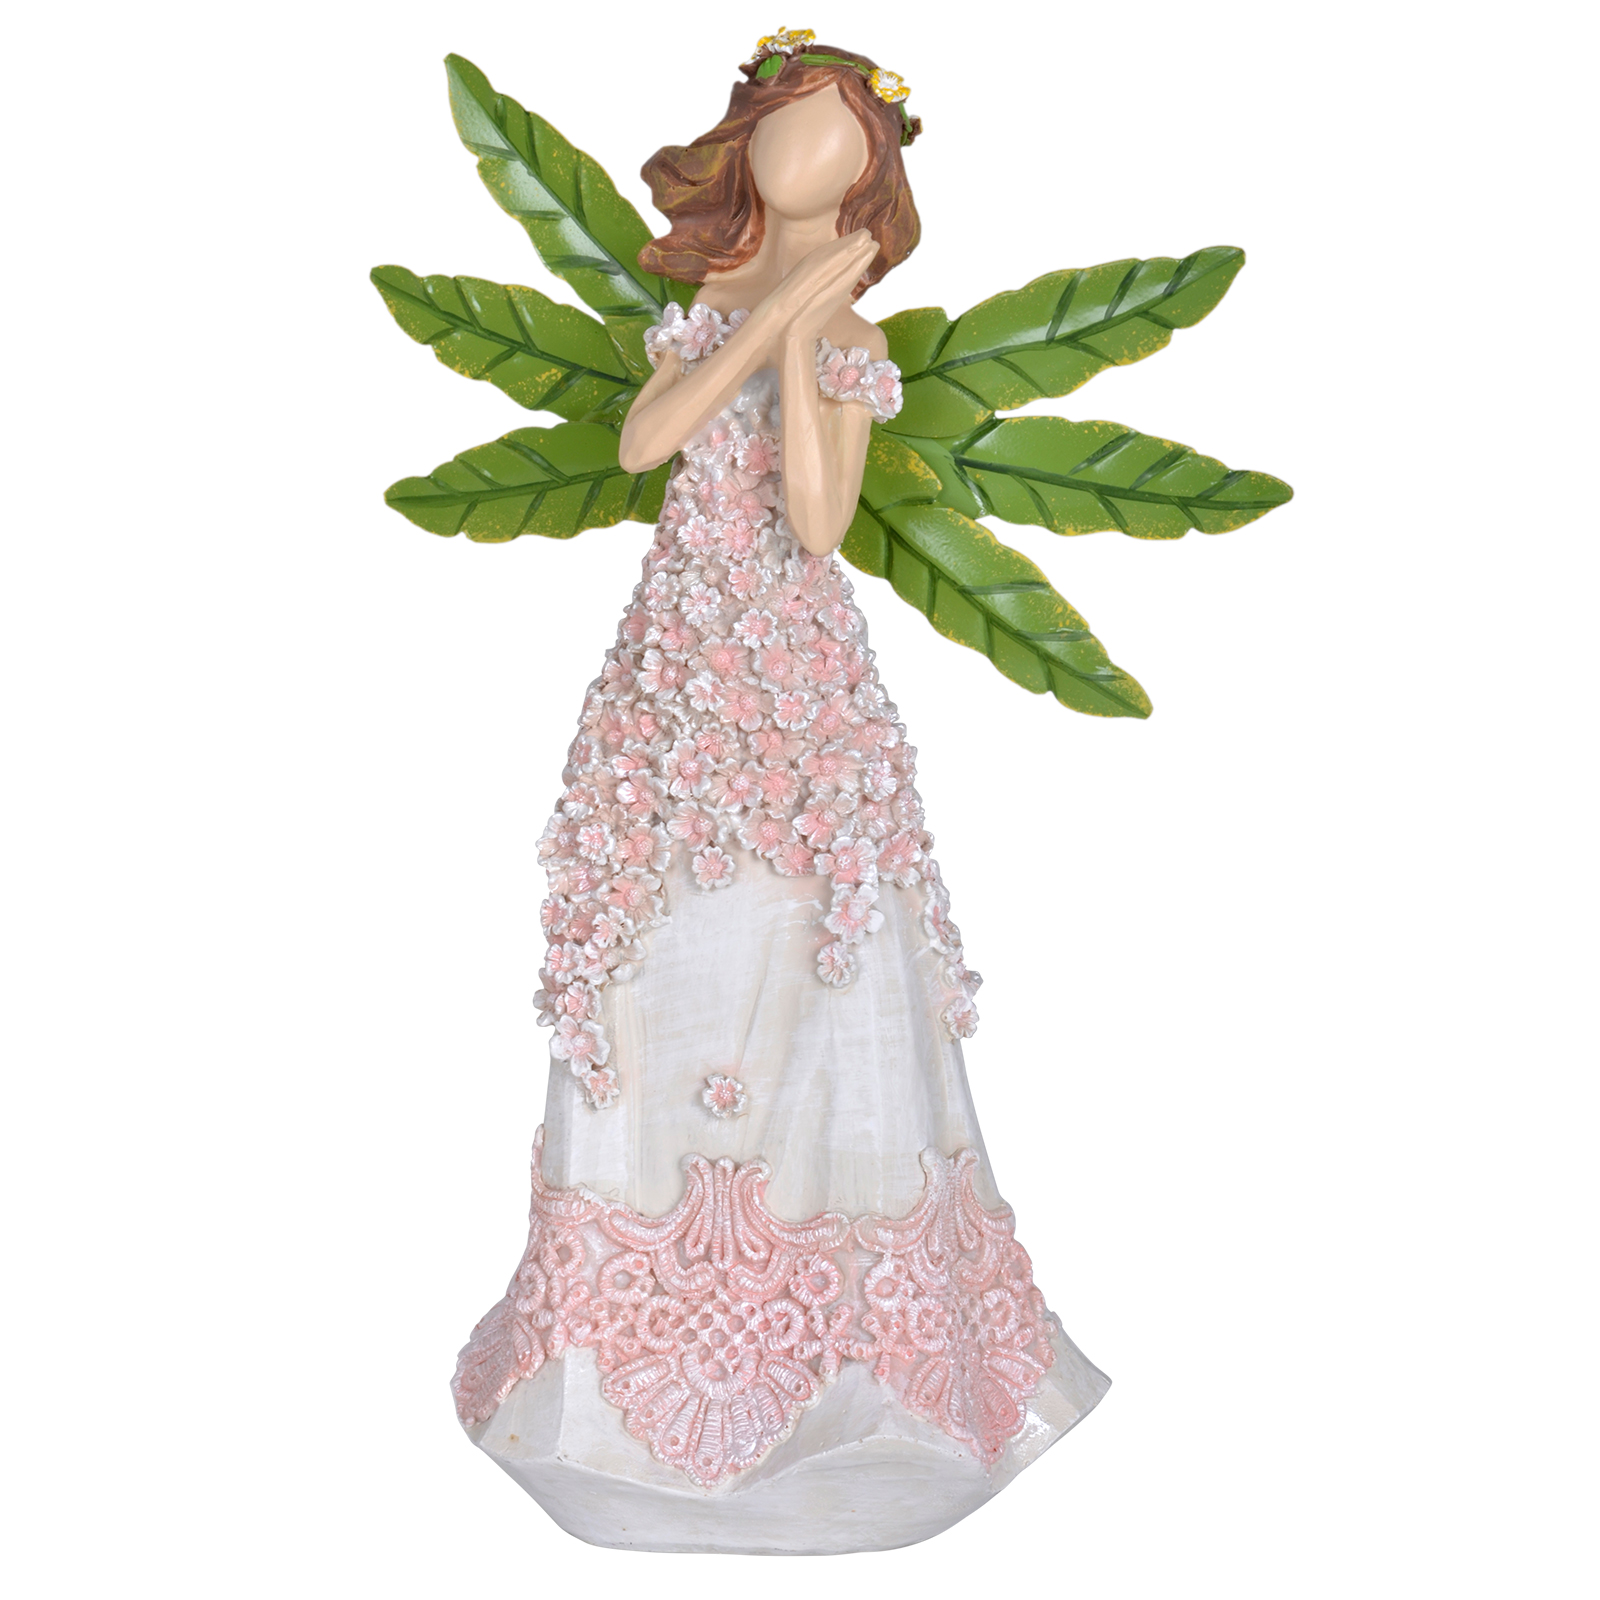 Angel Figurine Standing Decoration Home D Cor Ornament: eba home interior figurines